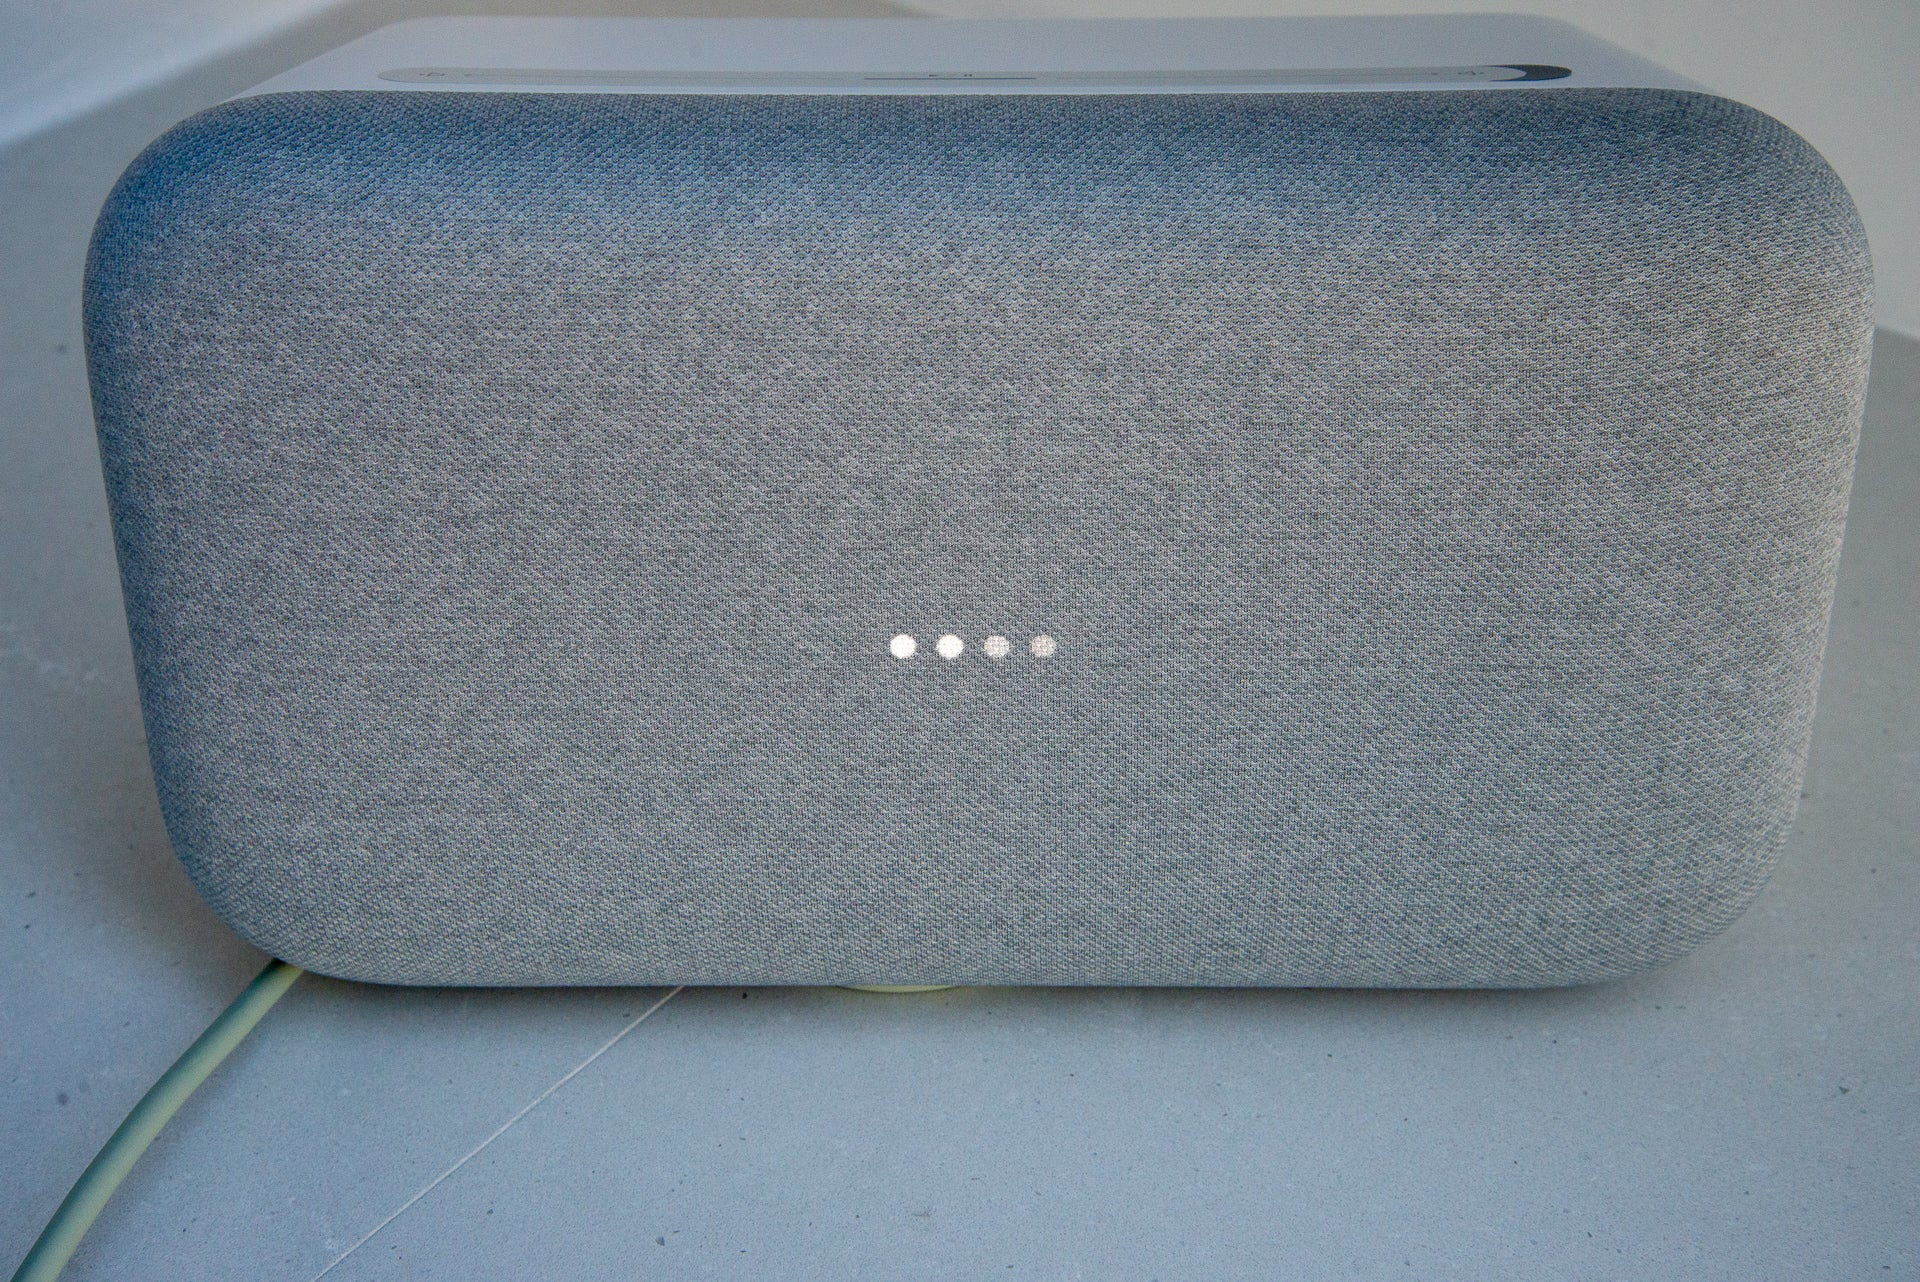 can you link the google home max with sonos speakers